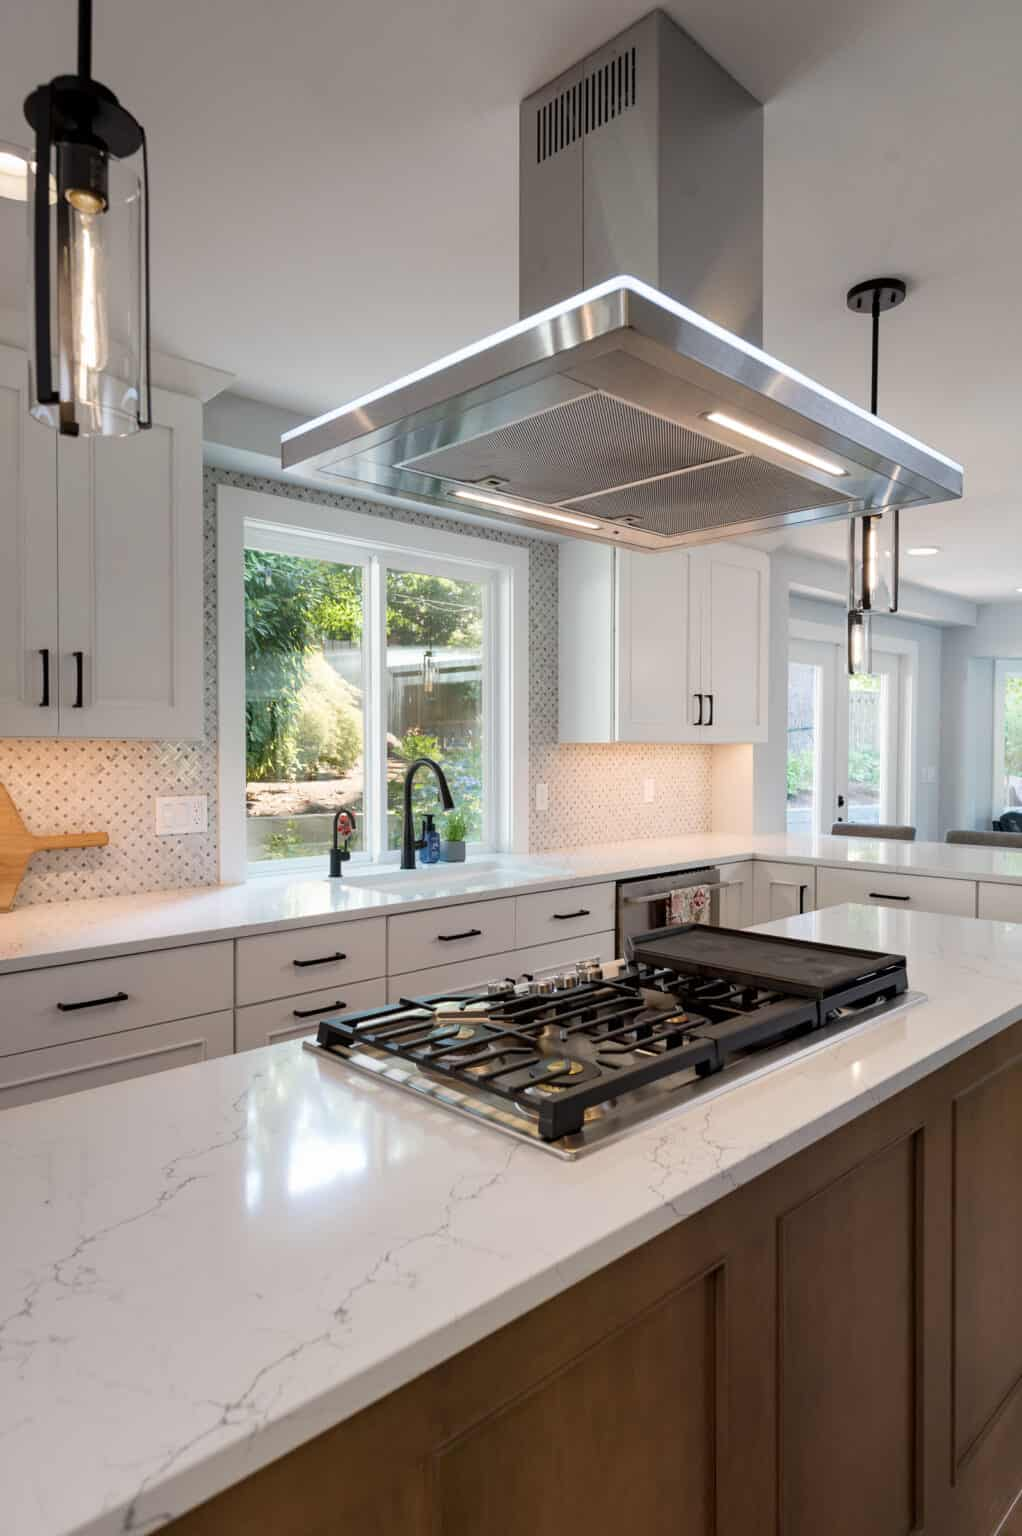 TWO TONED KITCHEN REMODEL 4